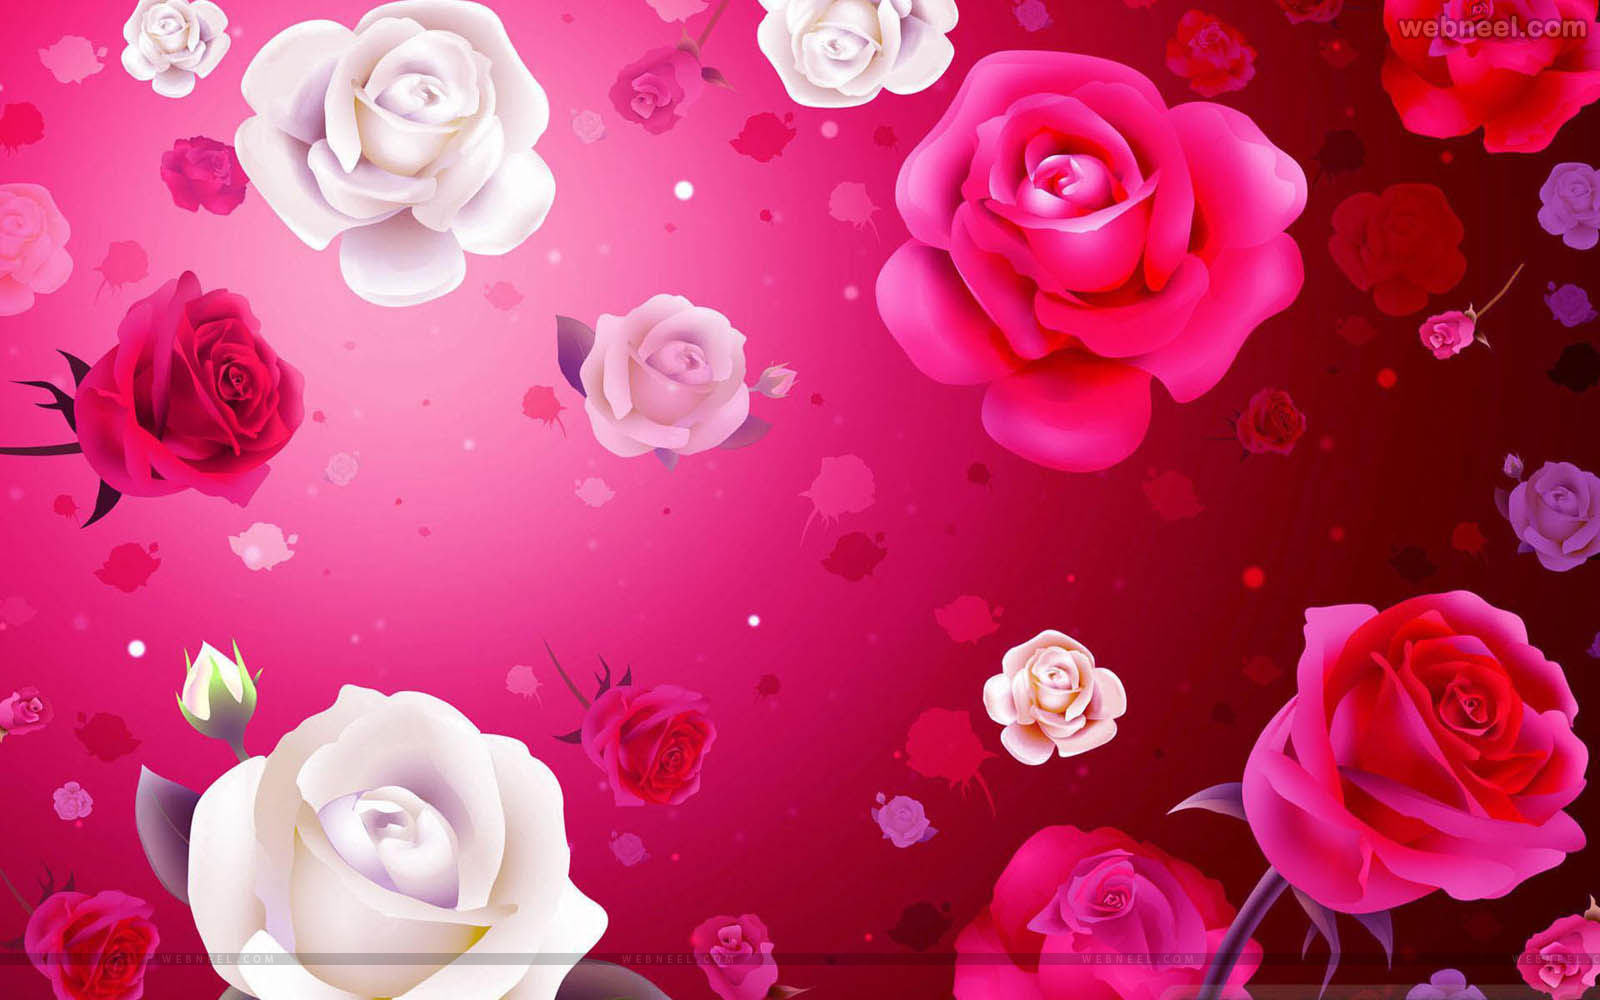 Free Download Valentine Day Wallpaper 13 View All 1600x1000 For